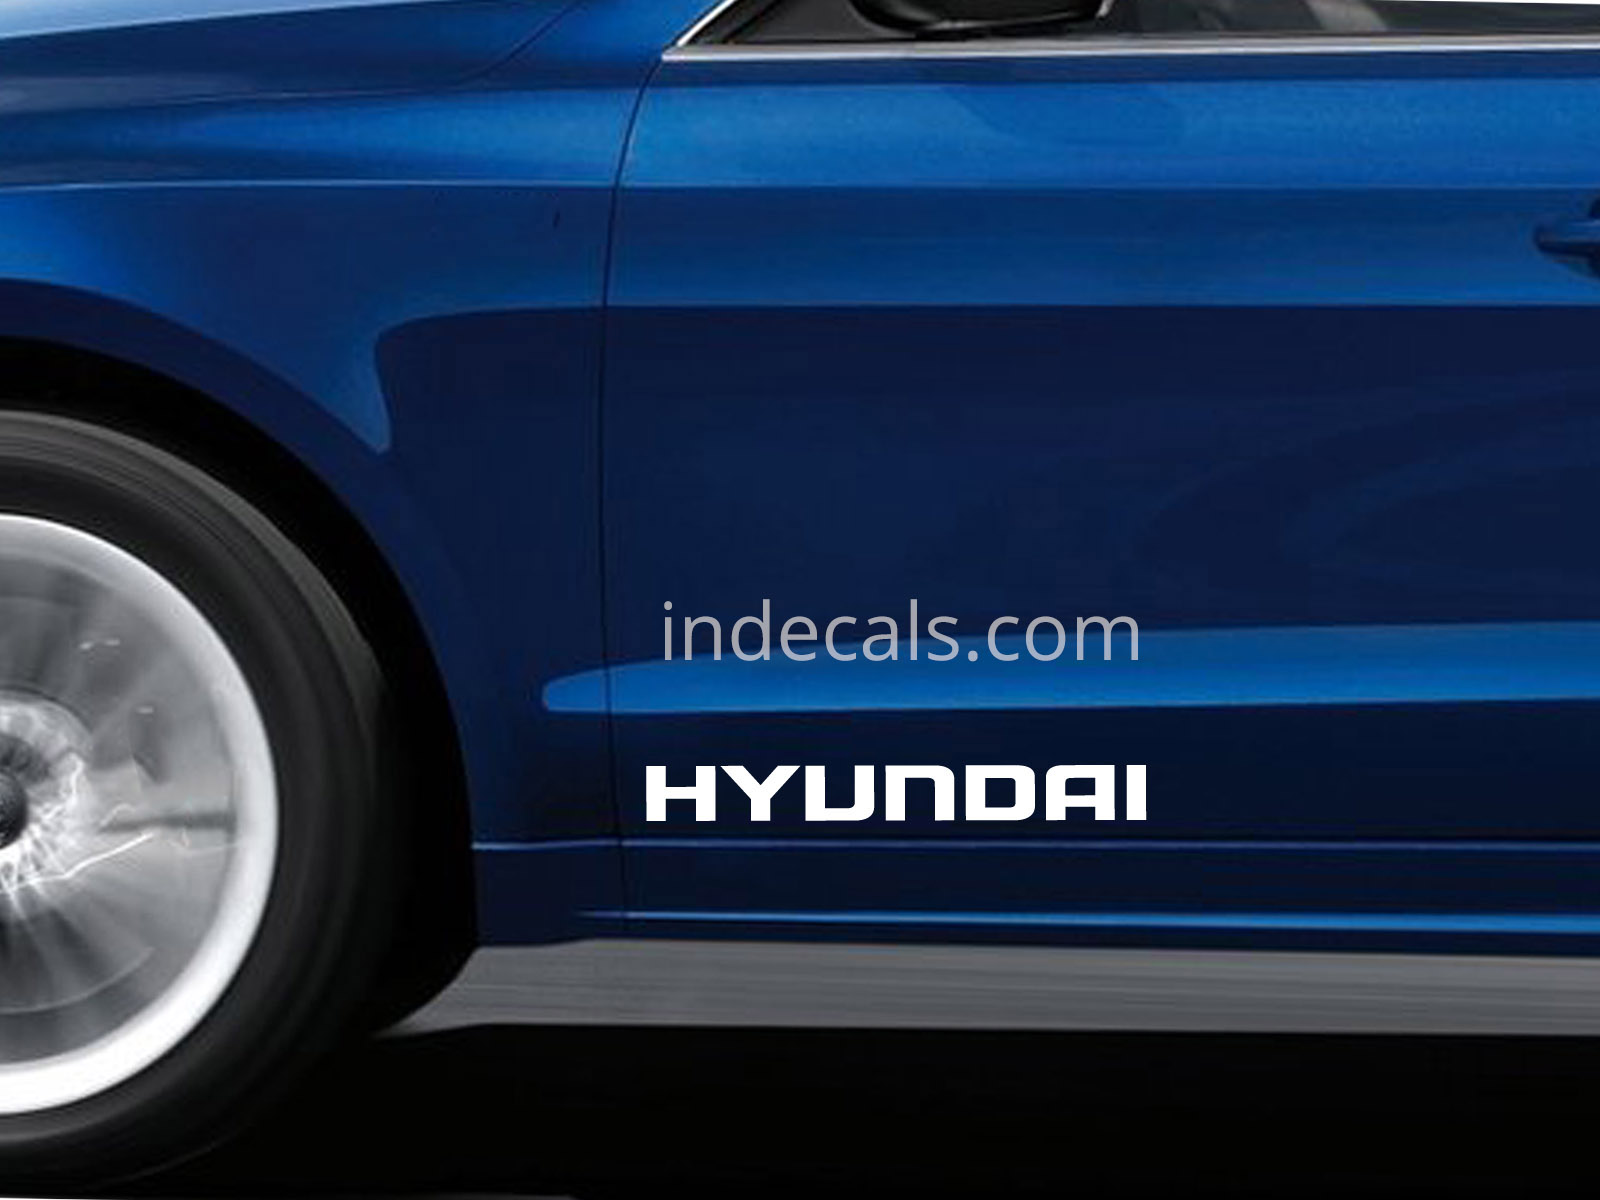 2 x Hyundai Stickers for Doors Large - White